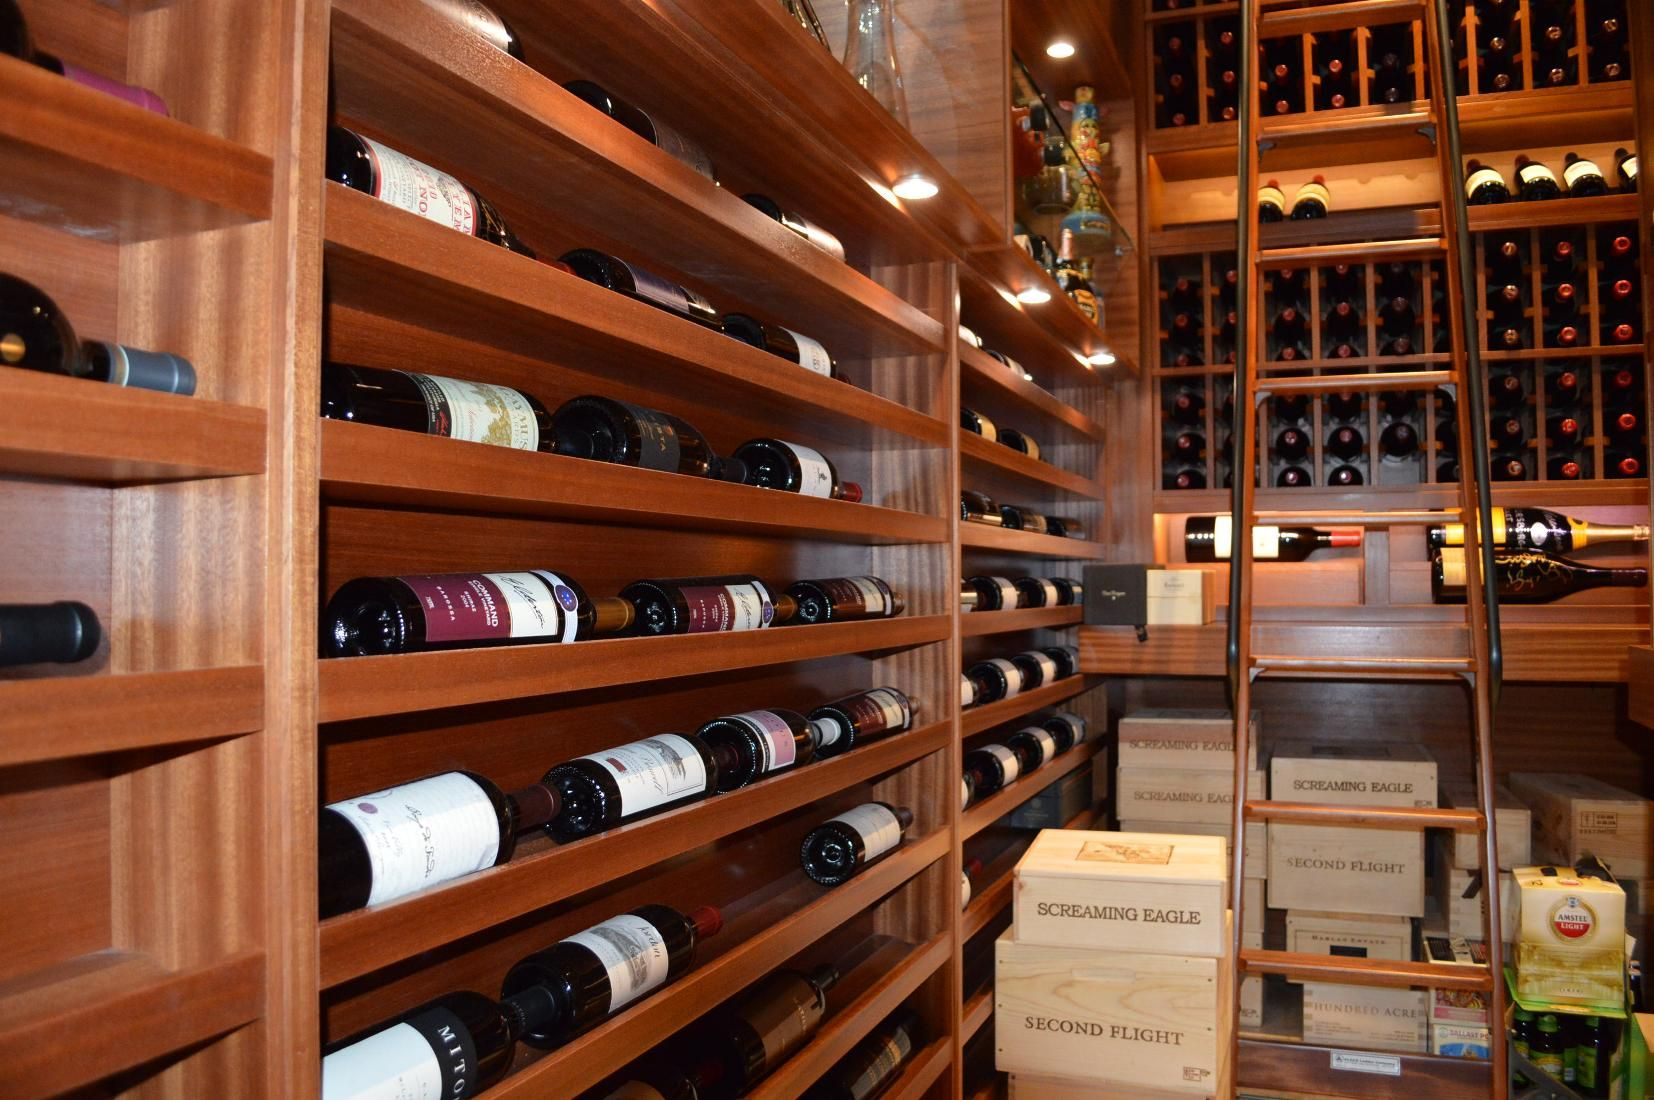 Horizontal Display and Case Storage Racks Miami Custom Wine Cellar : wine cellar miami  - Aeropaca.Org